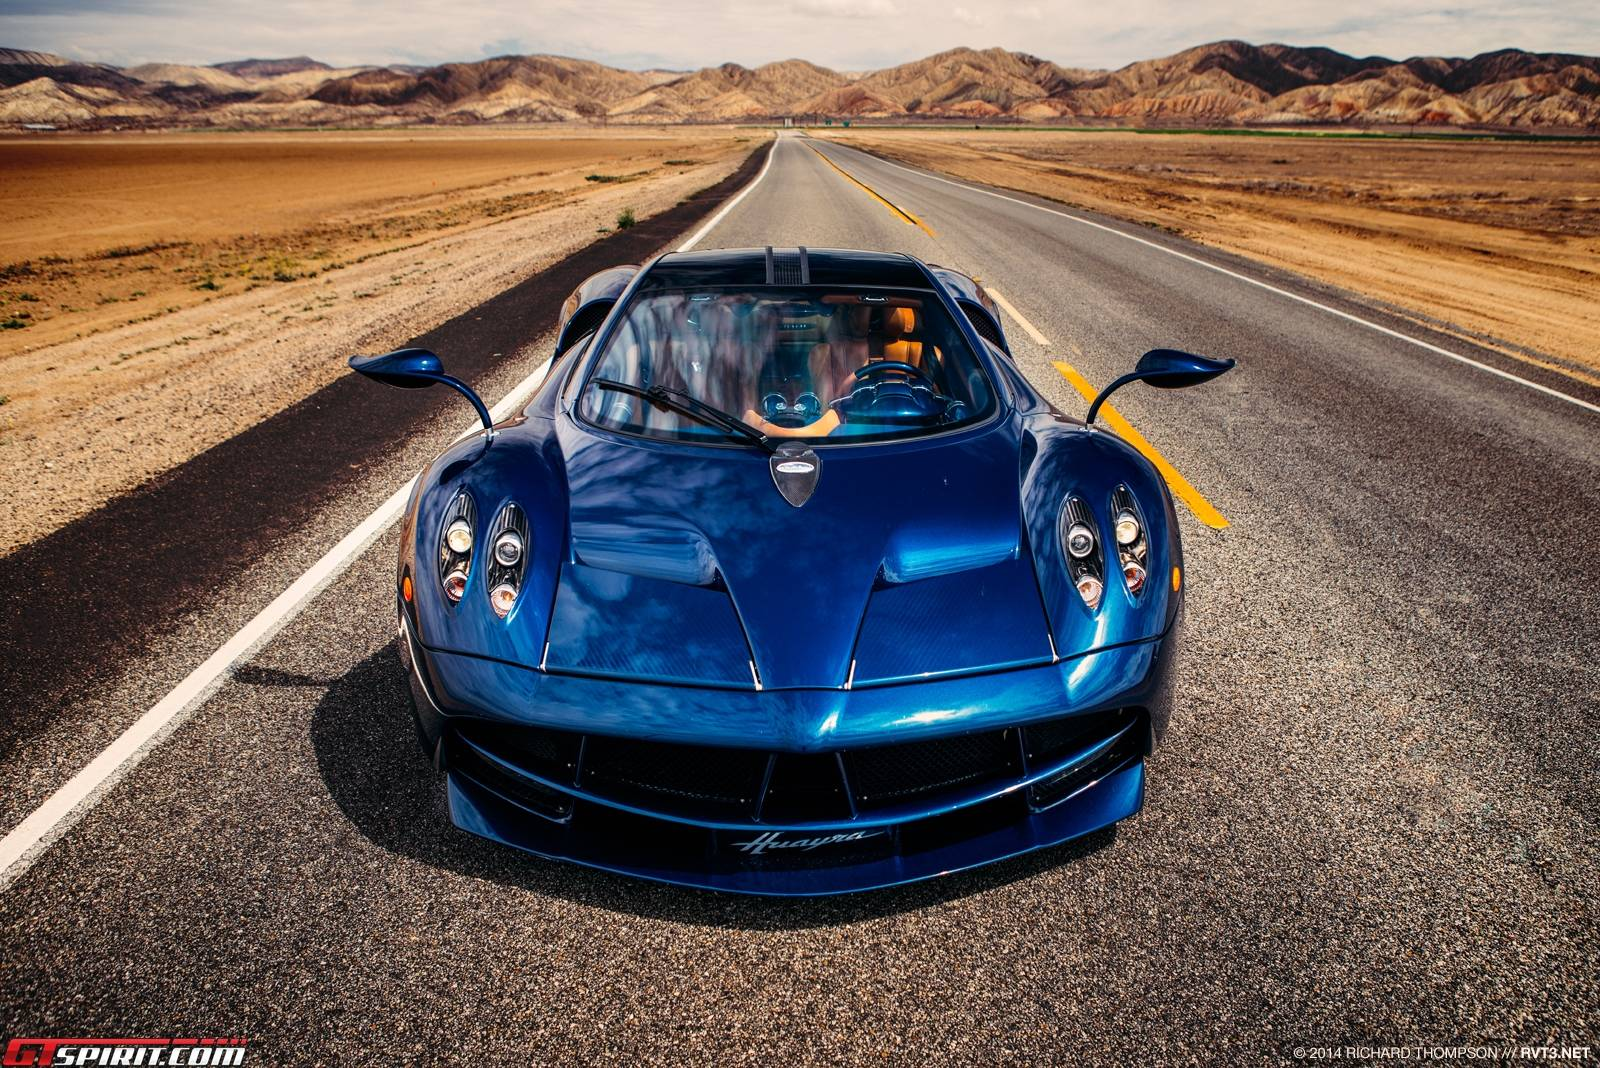 Pagani Huayra For Sale >> Exclusive: Pagani Huayra Sold Out! Roadster Coming in 2016 - GTspirit